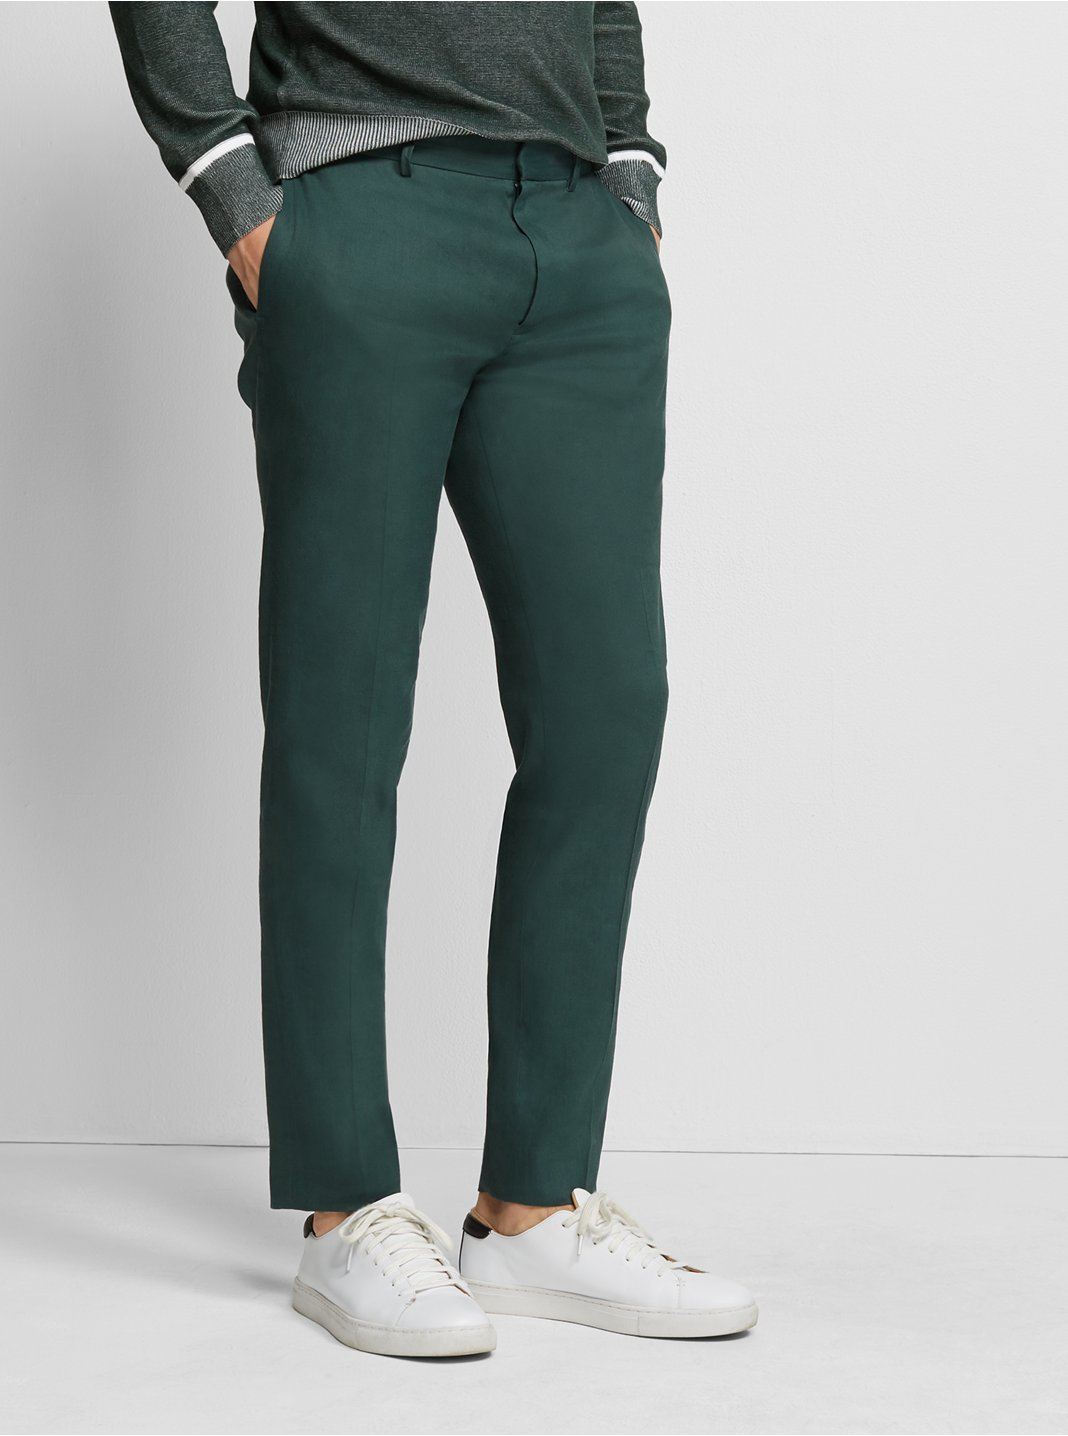 Sutton Linen-Blend Dress Pant